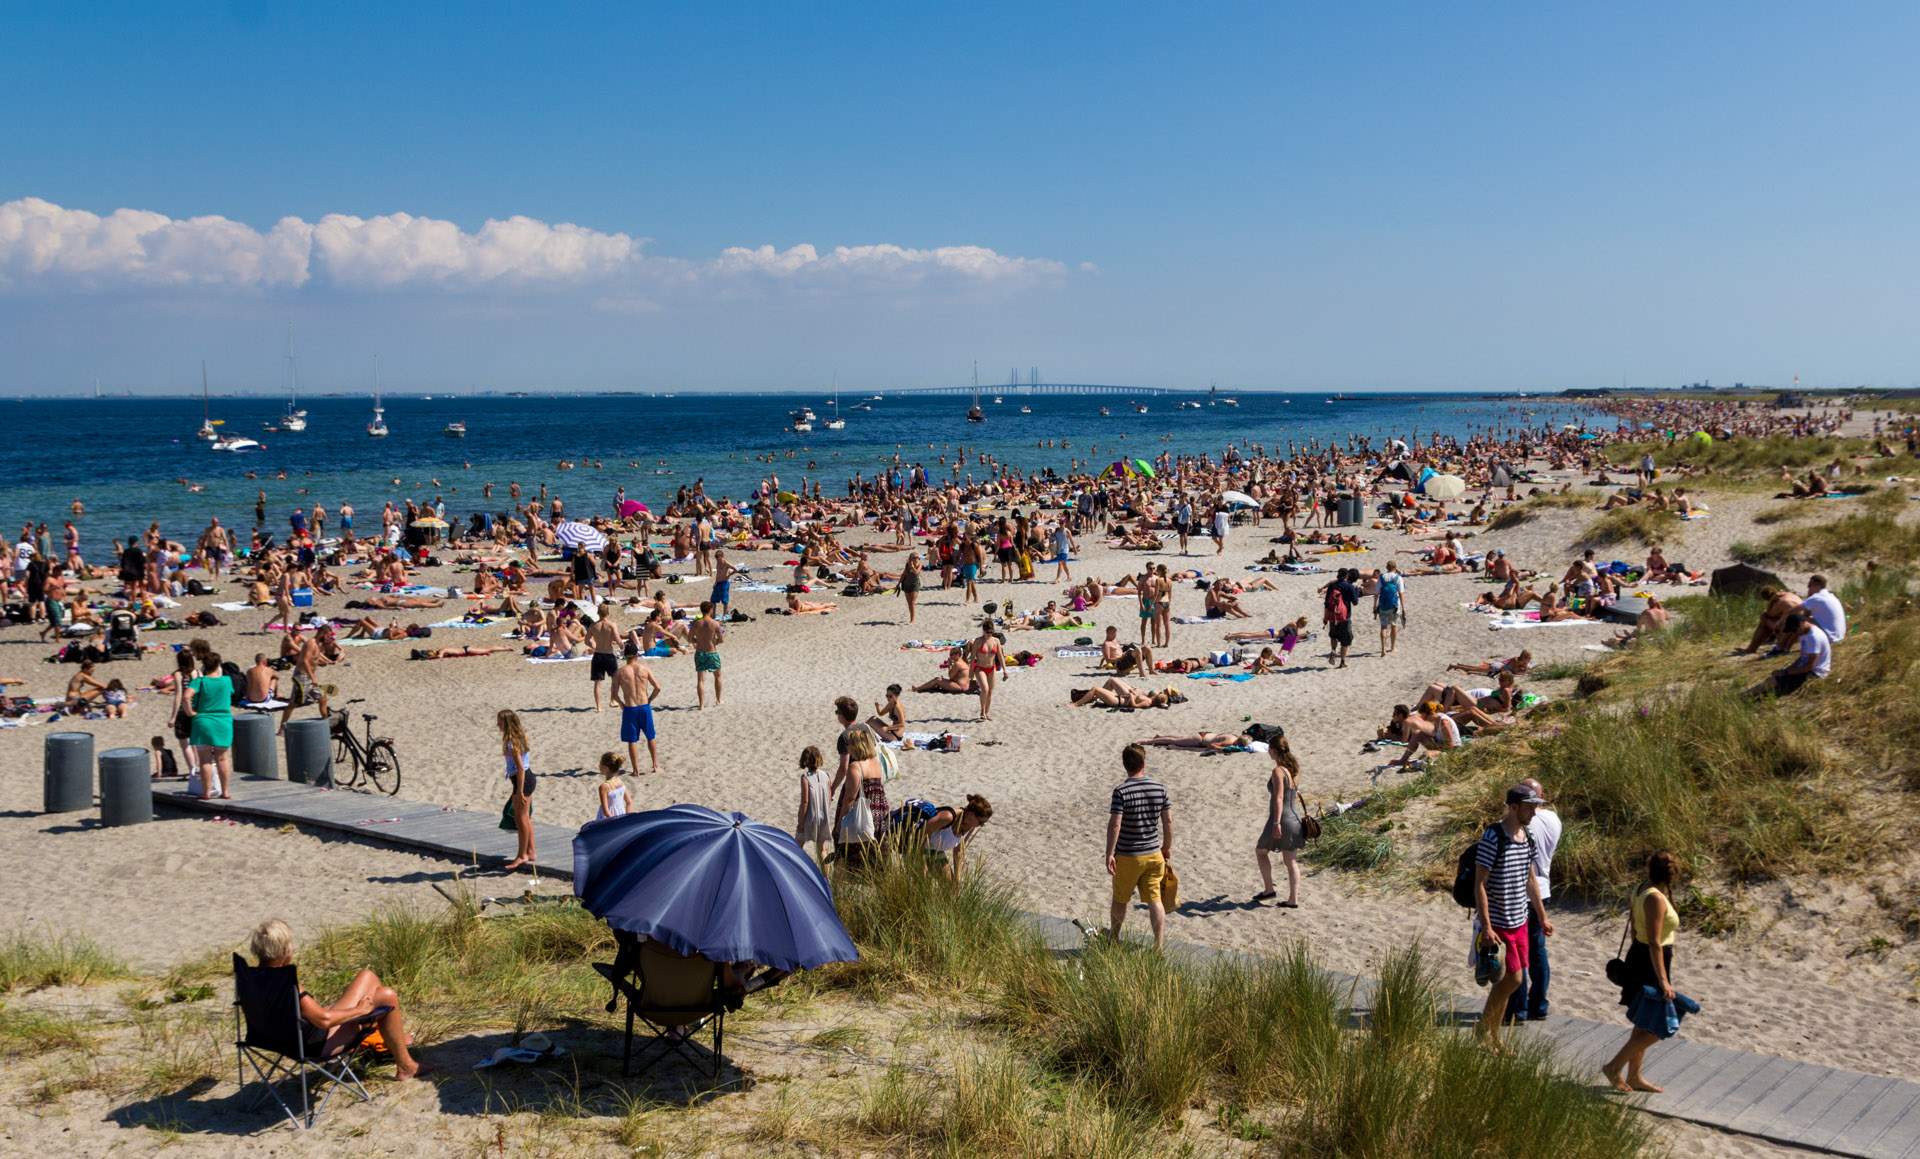 Amager Beach Park file:amager strandpark 2014 - wikimedia commons